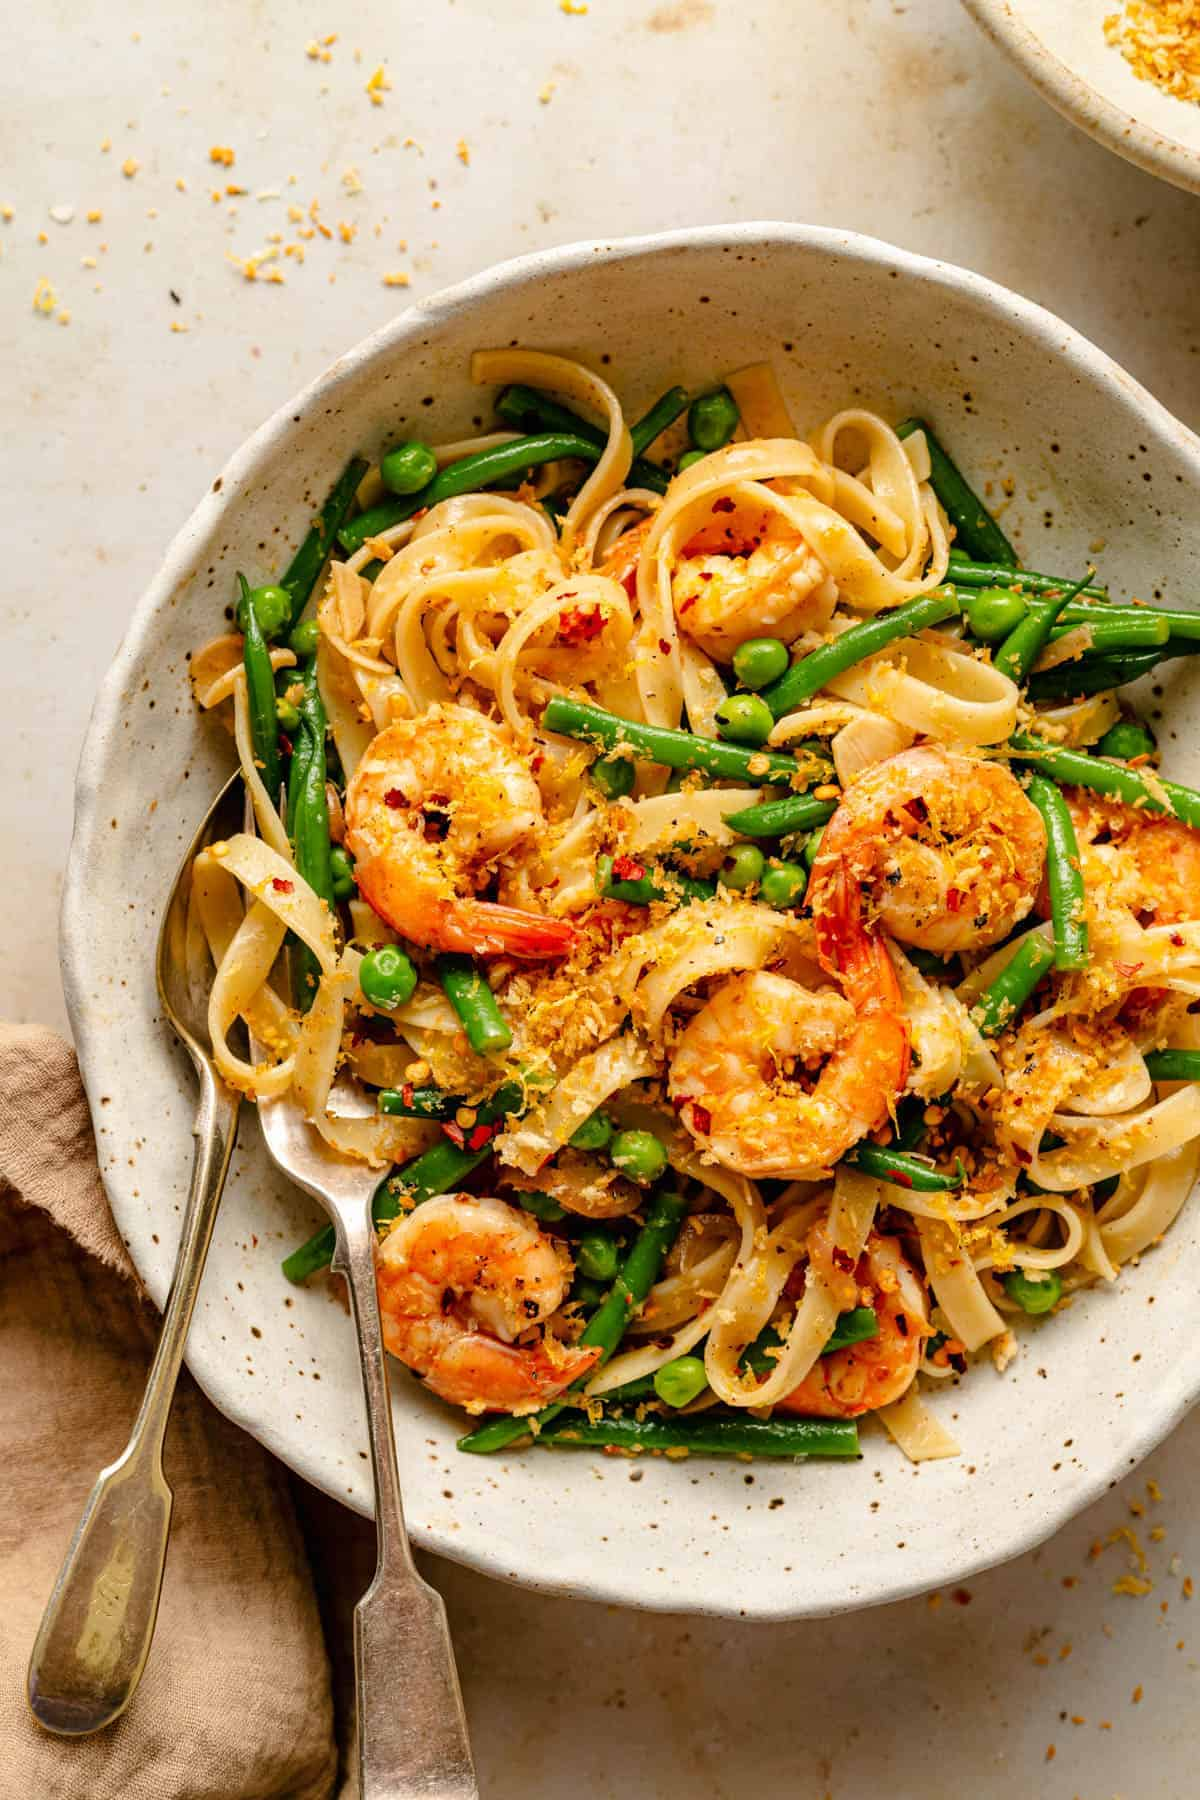 Lemon garlic and shrimp pasta in a bowl with pangrattato on top and spoon and fork